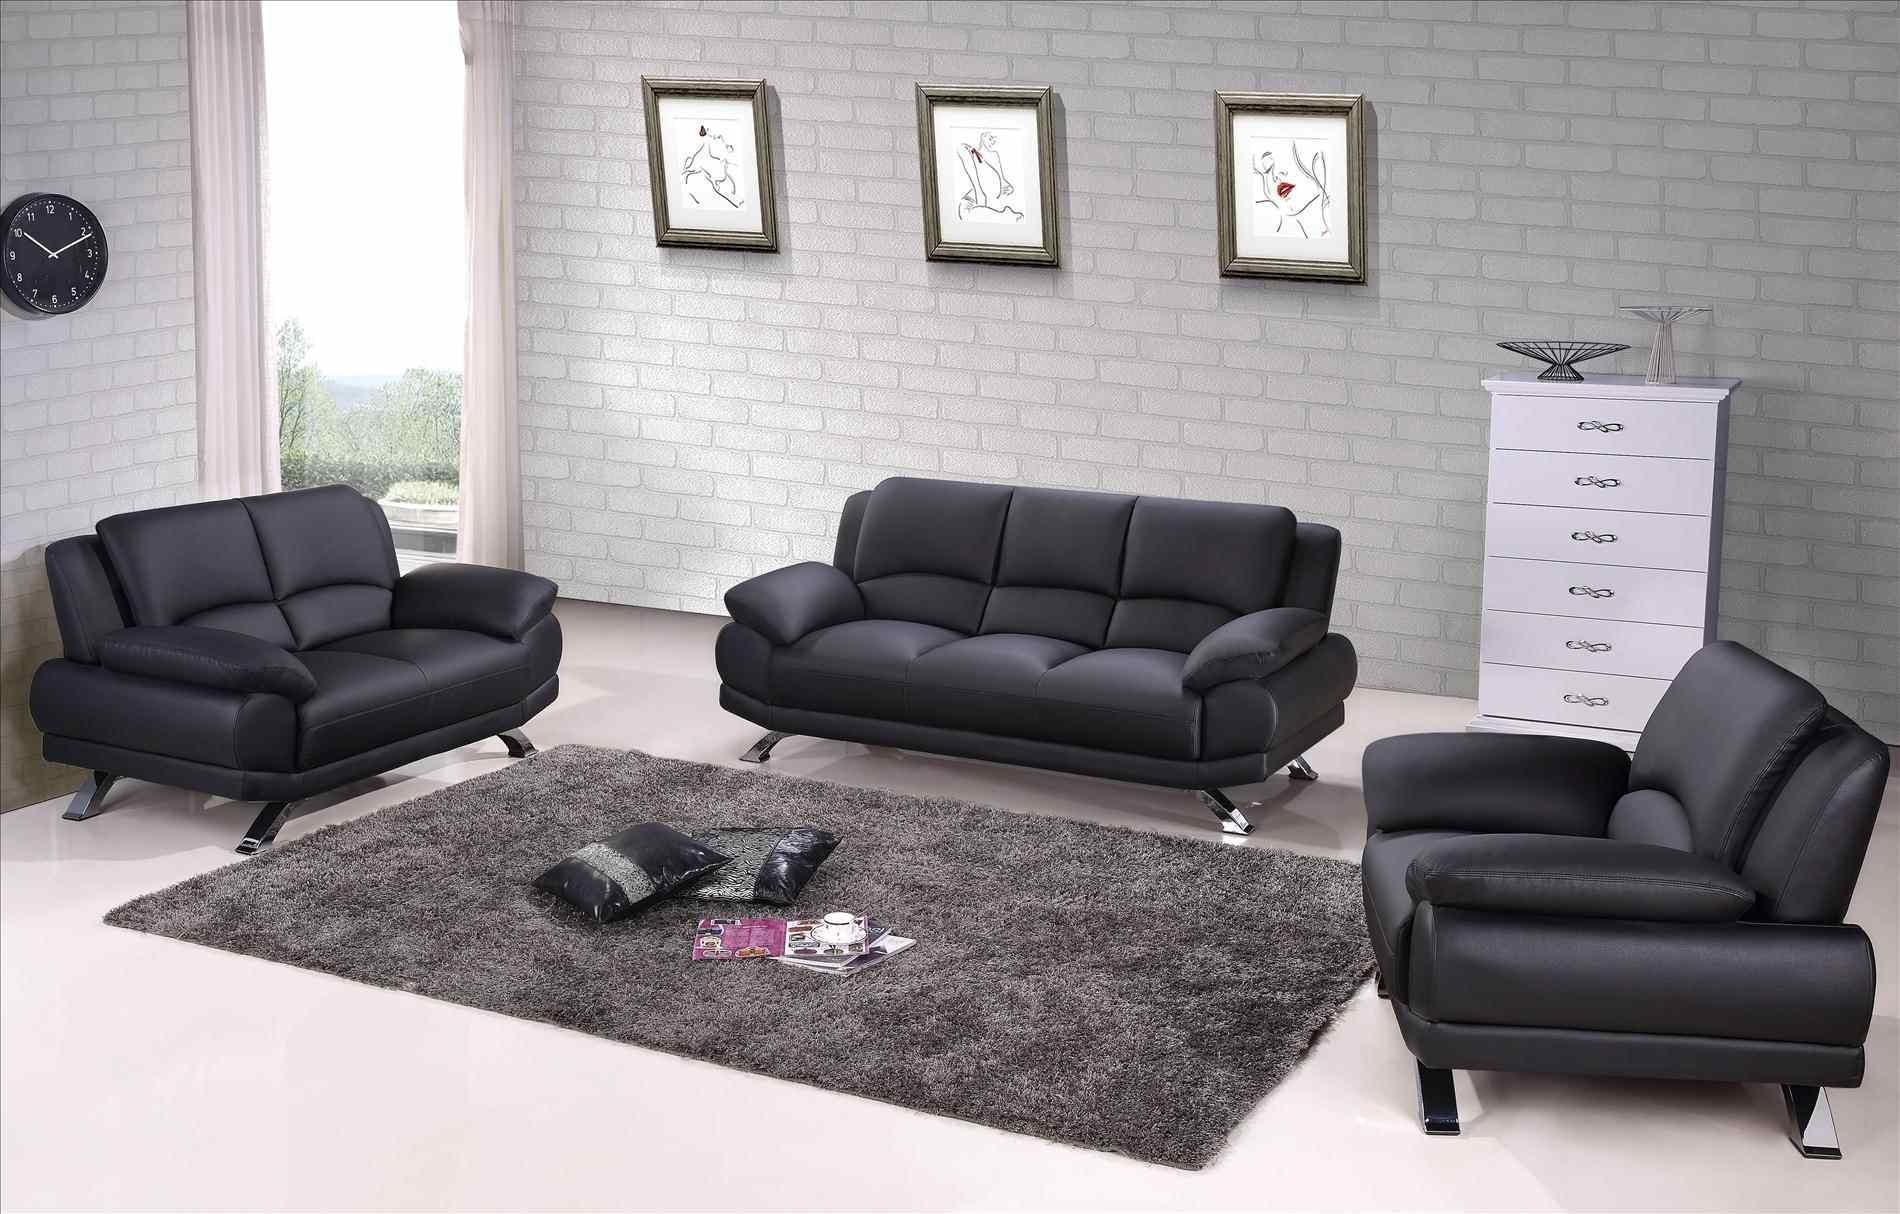 Couch : Genuine Leather Couches Kramfors Lshape Sectional Youtube In Nj Sectional Sofas (View 8 of 10)